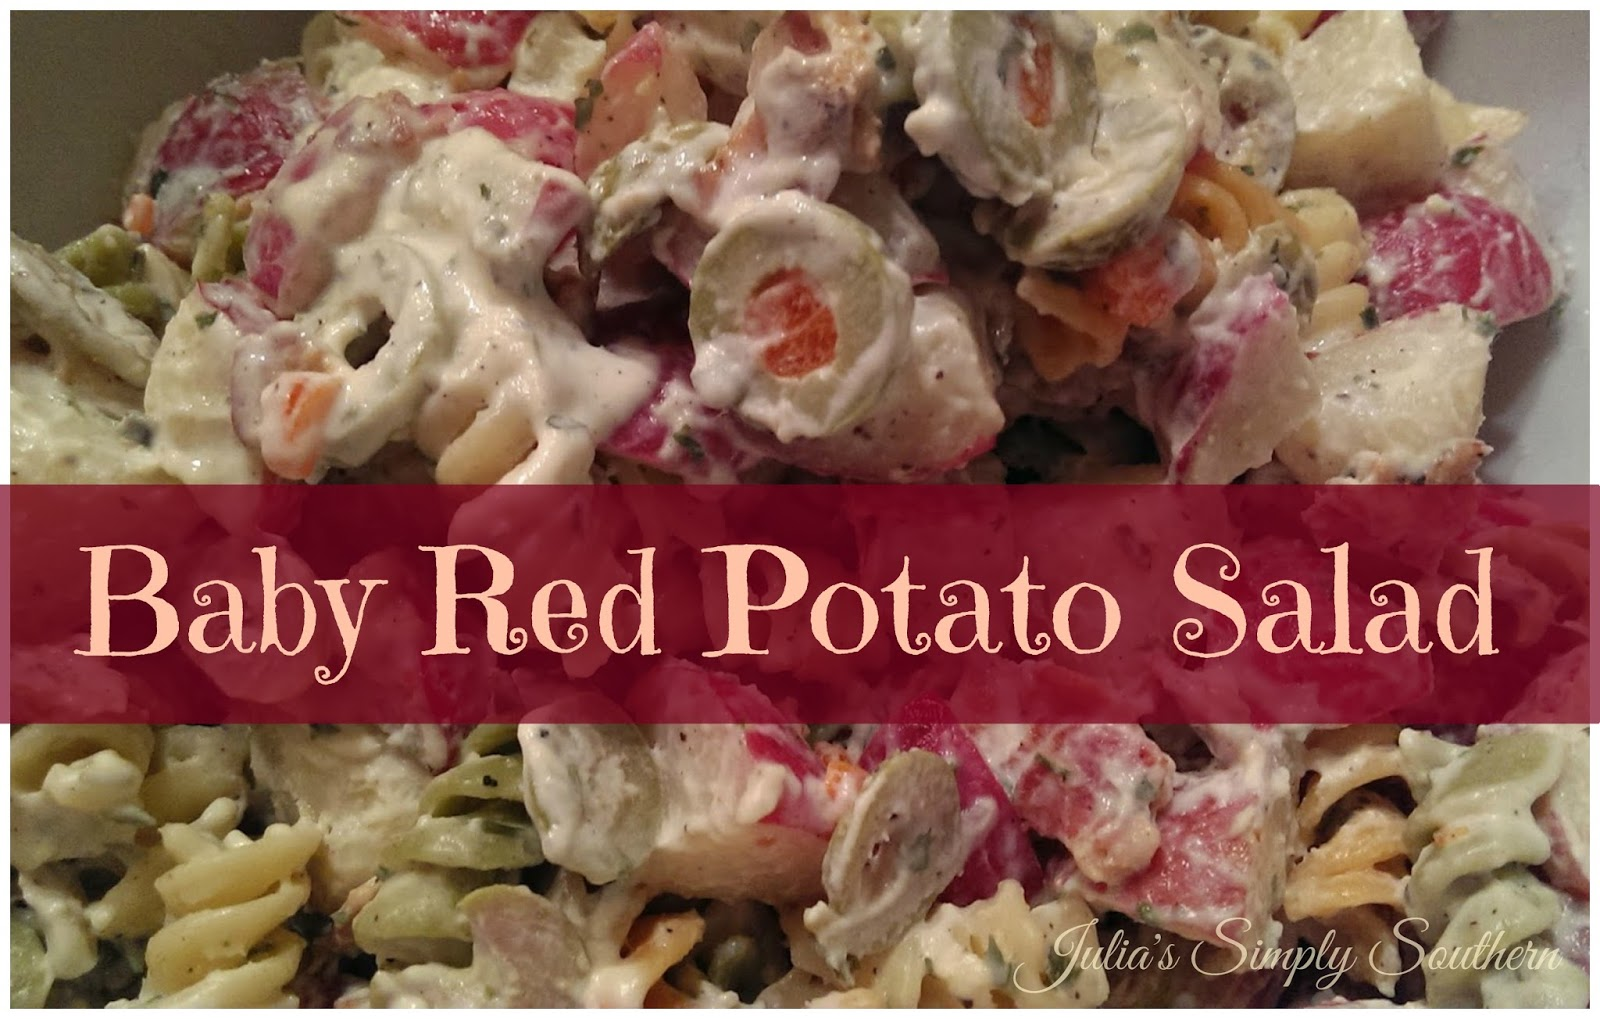 Julia's Simply Southern: Baby Red Potato Salad